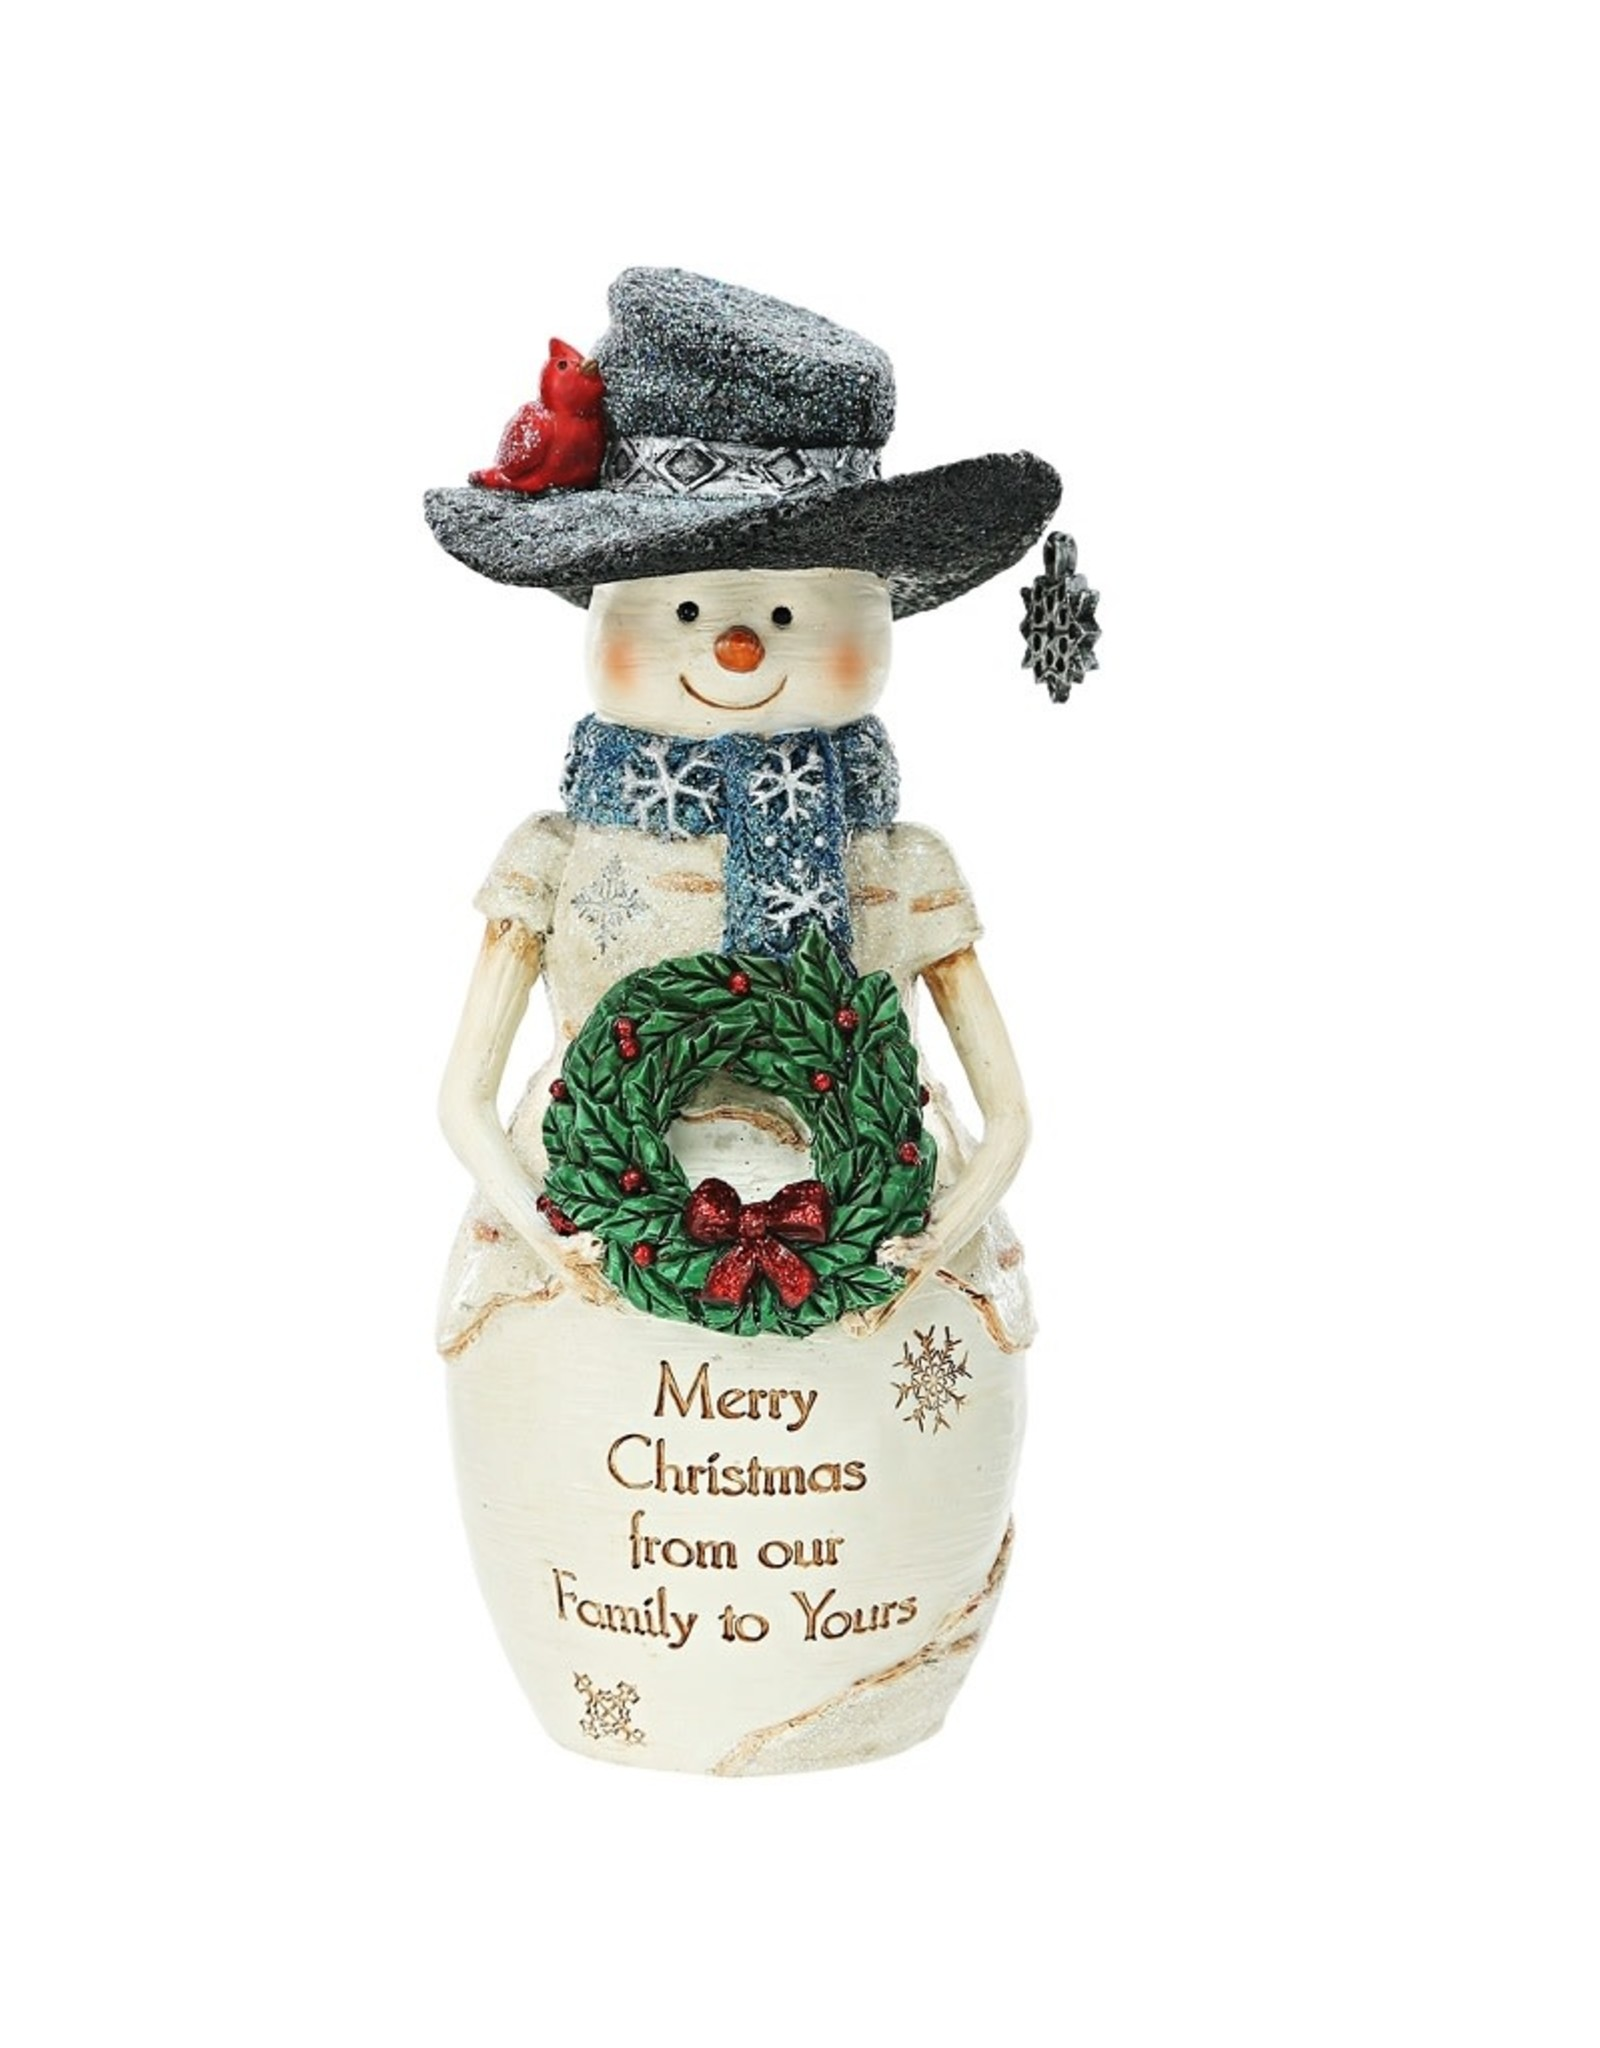 Pavilion Gift CHRISTMAS FAMILY SNOWMAN WITH WREATH